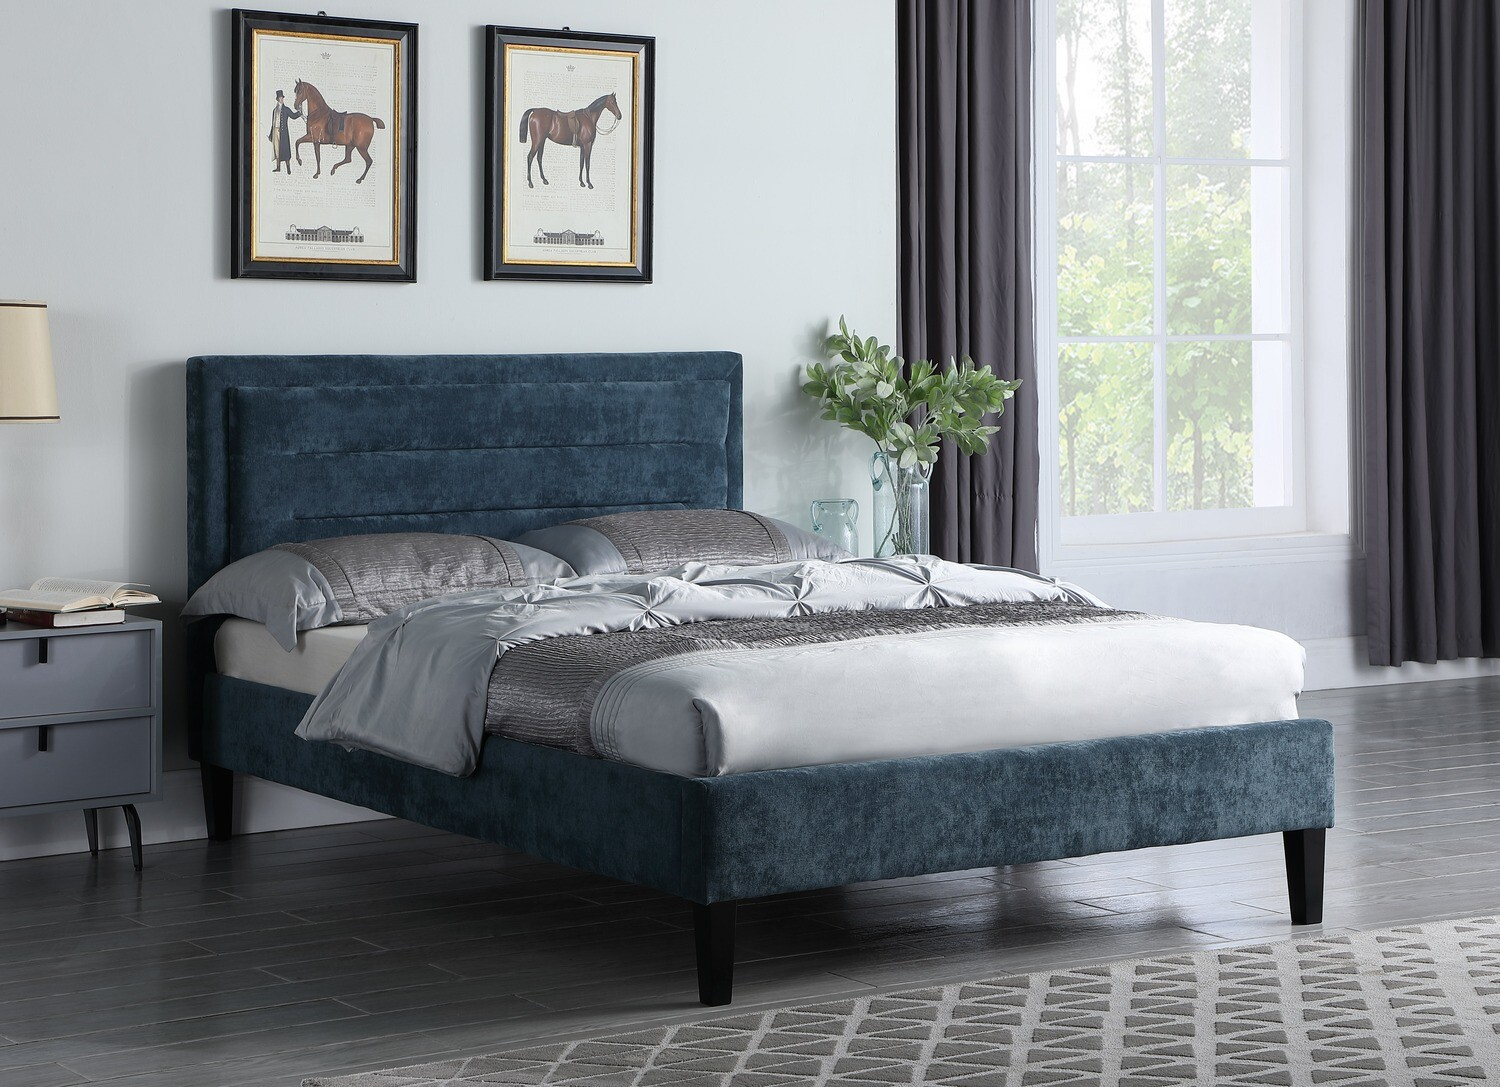 4ft6 Picasso double bed